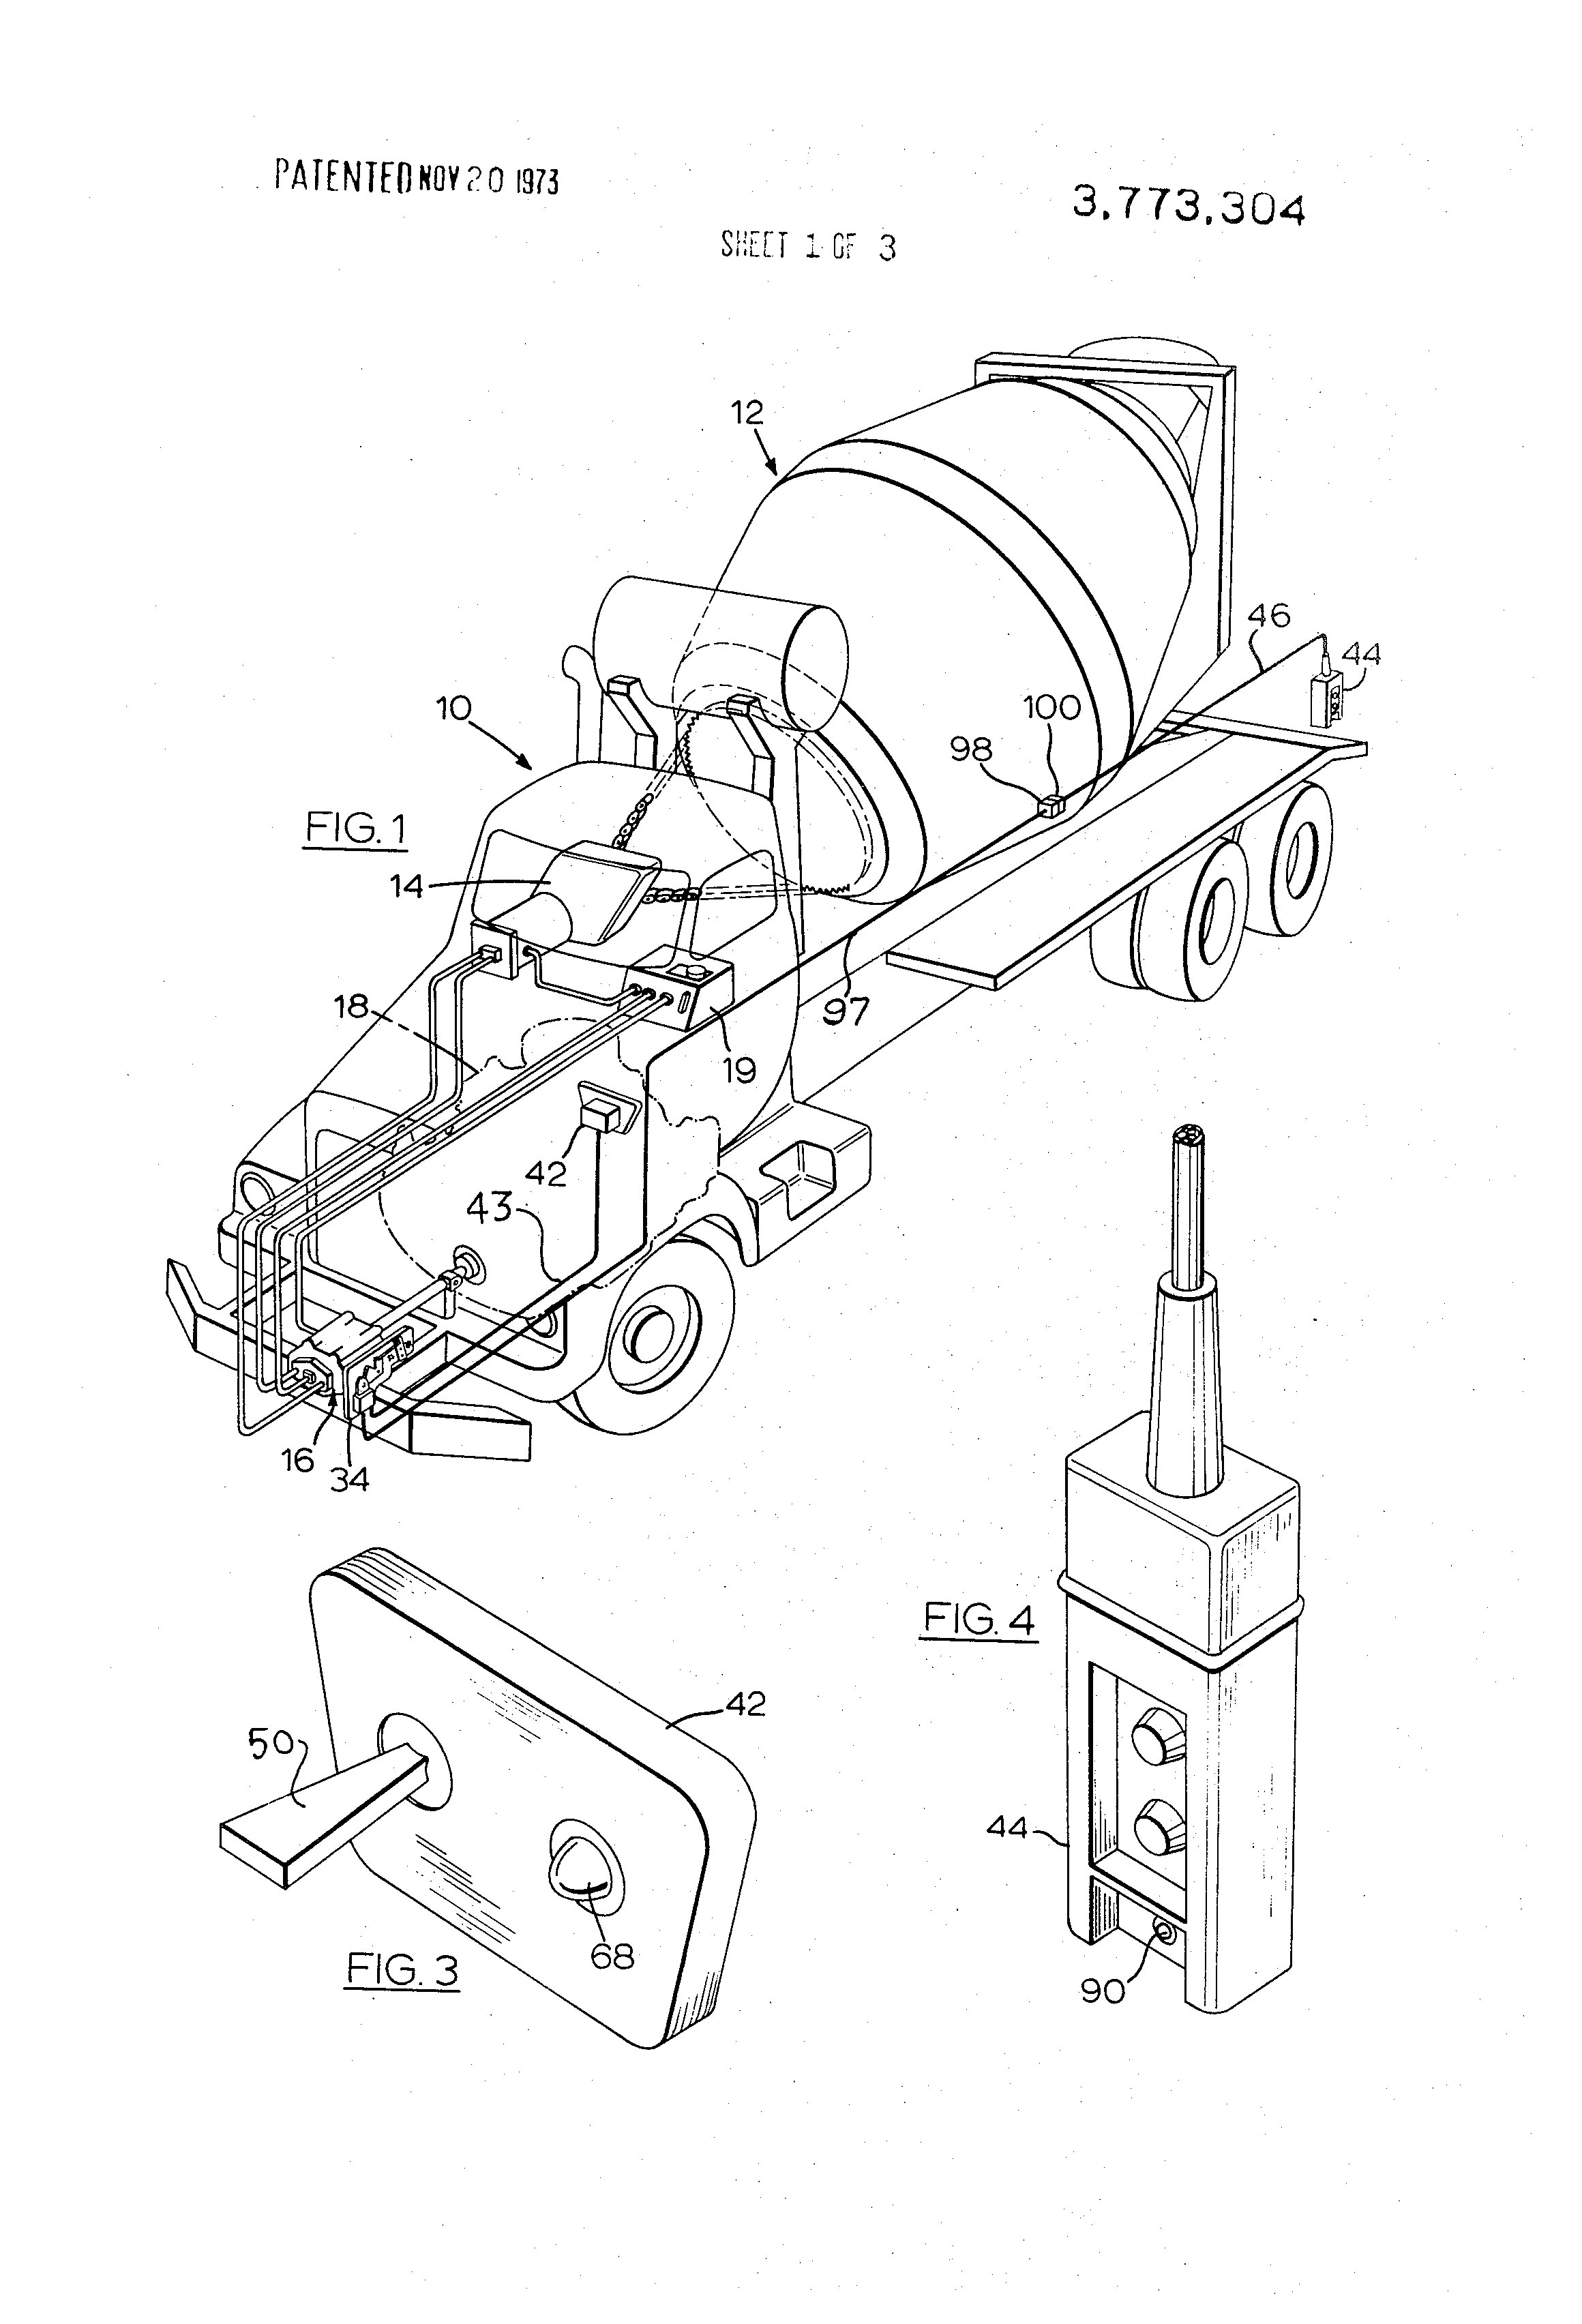 US3773304 1 of a concrete mixer truck